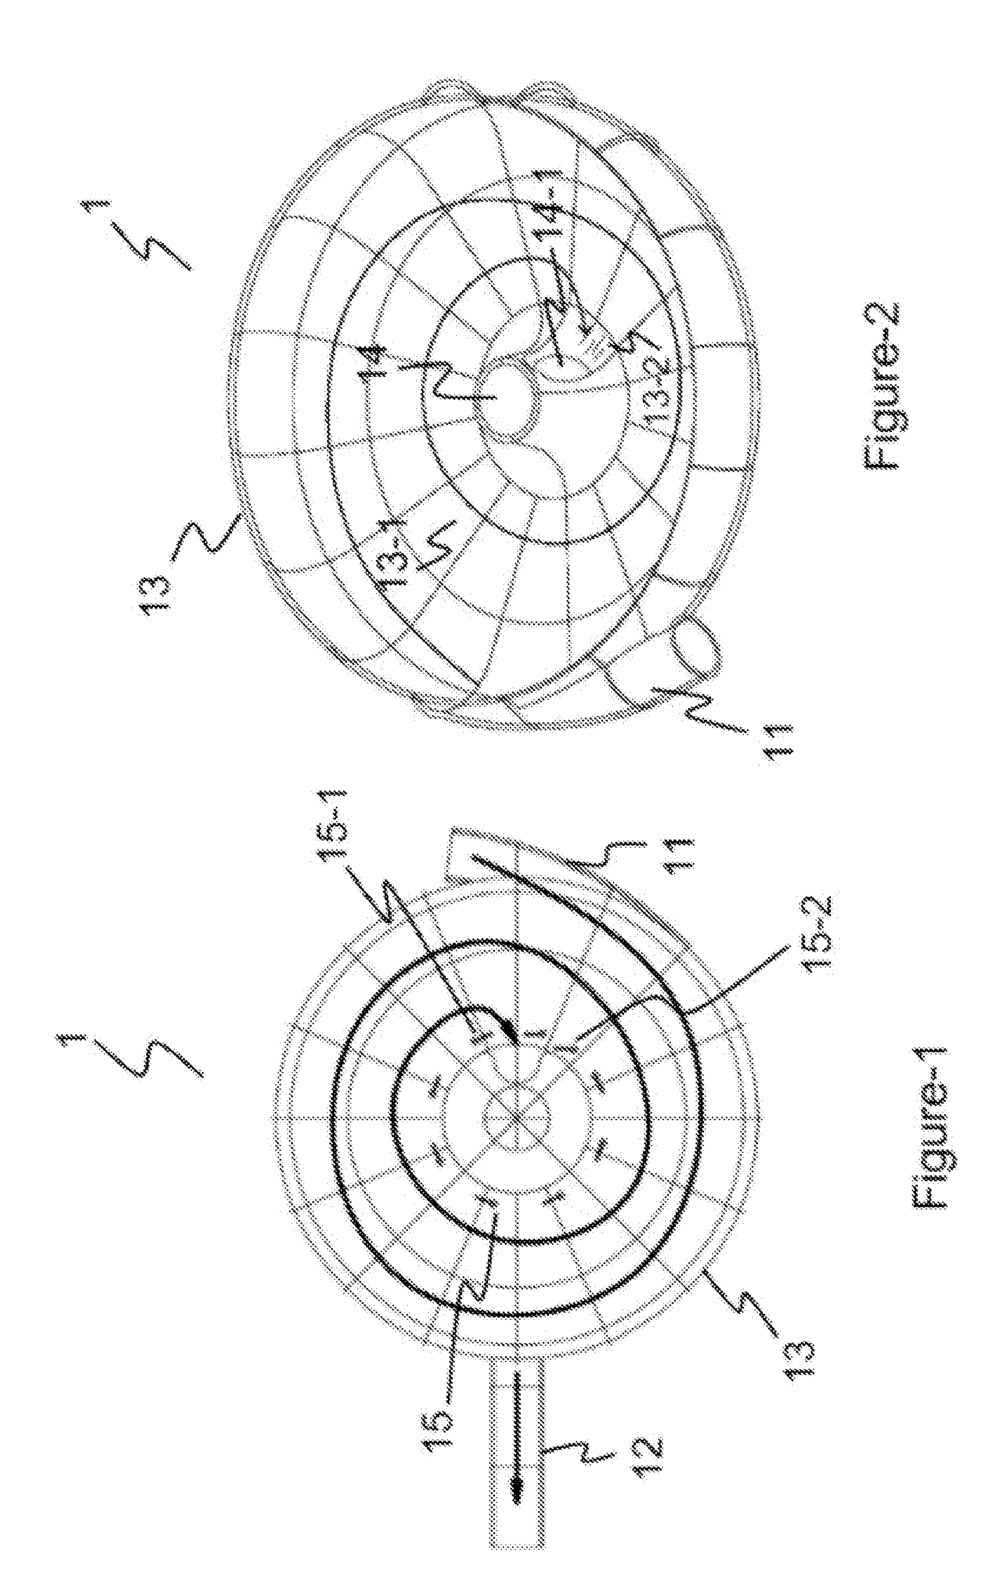 Sliding Bowl with Water Jet System patent illustration from  patents.google.com